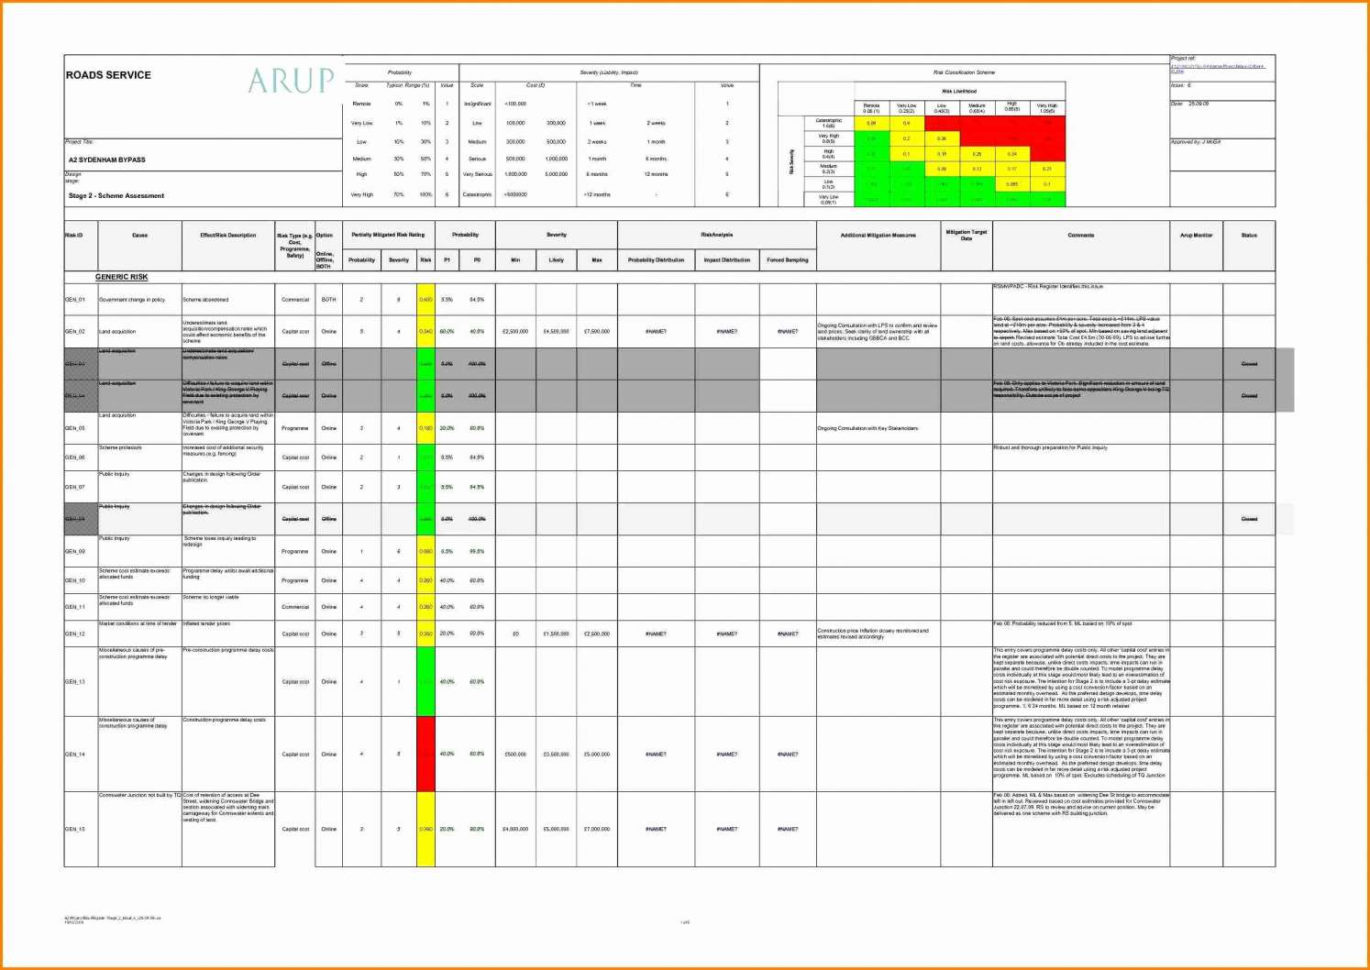 Project Resource Allocation Spreadsheet Template Regarding Excel Project Management Spreadsheet And Resource Allocation Matrix